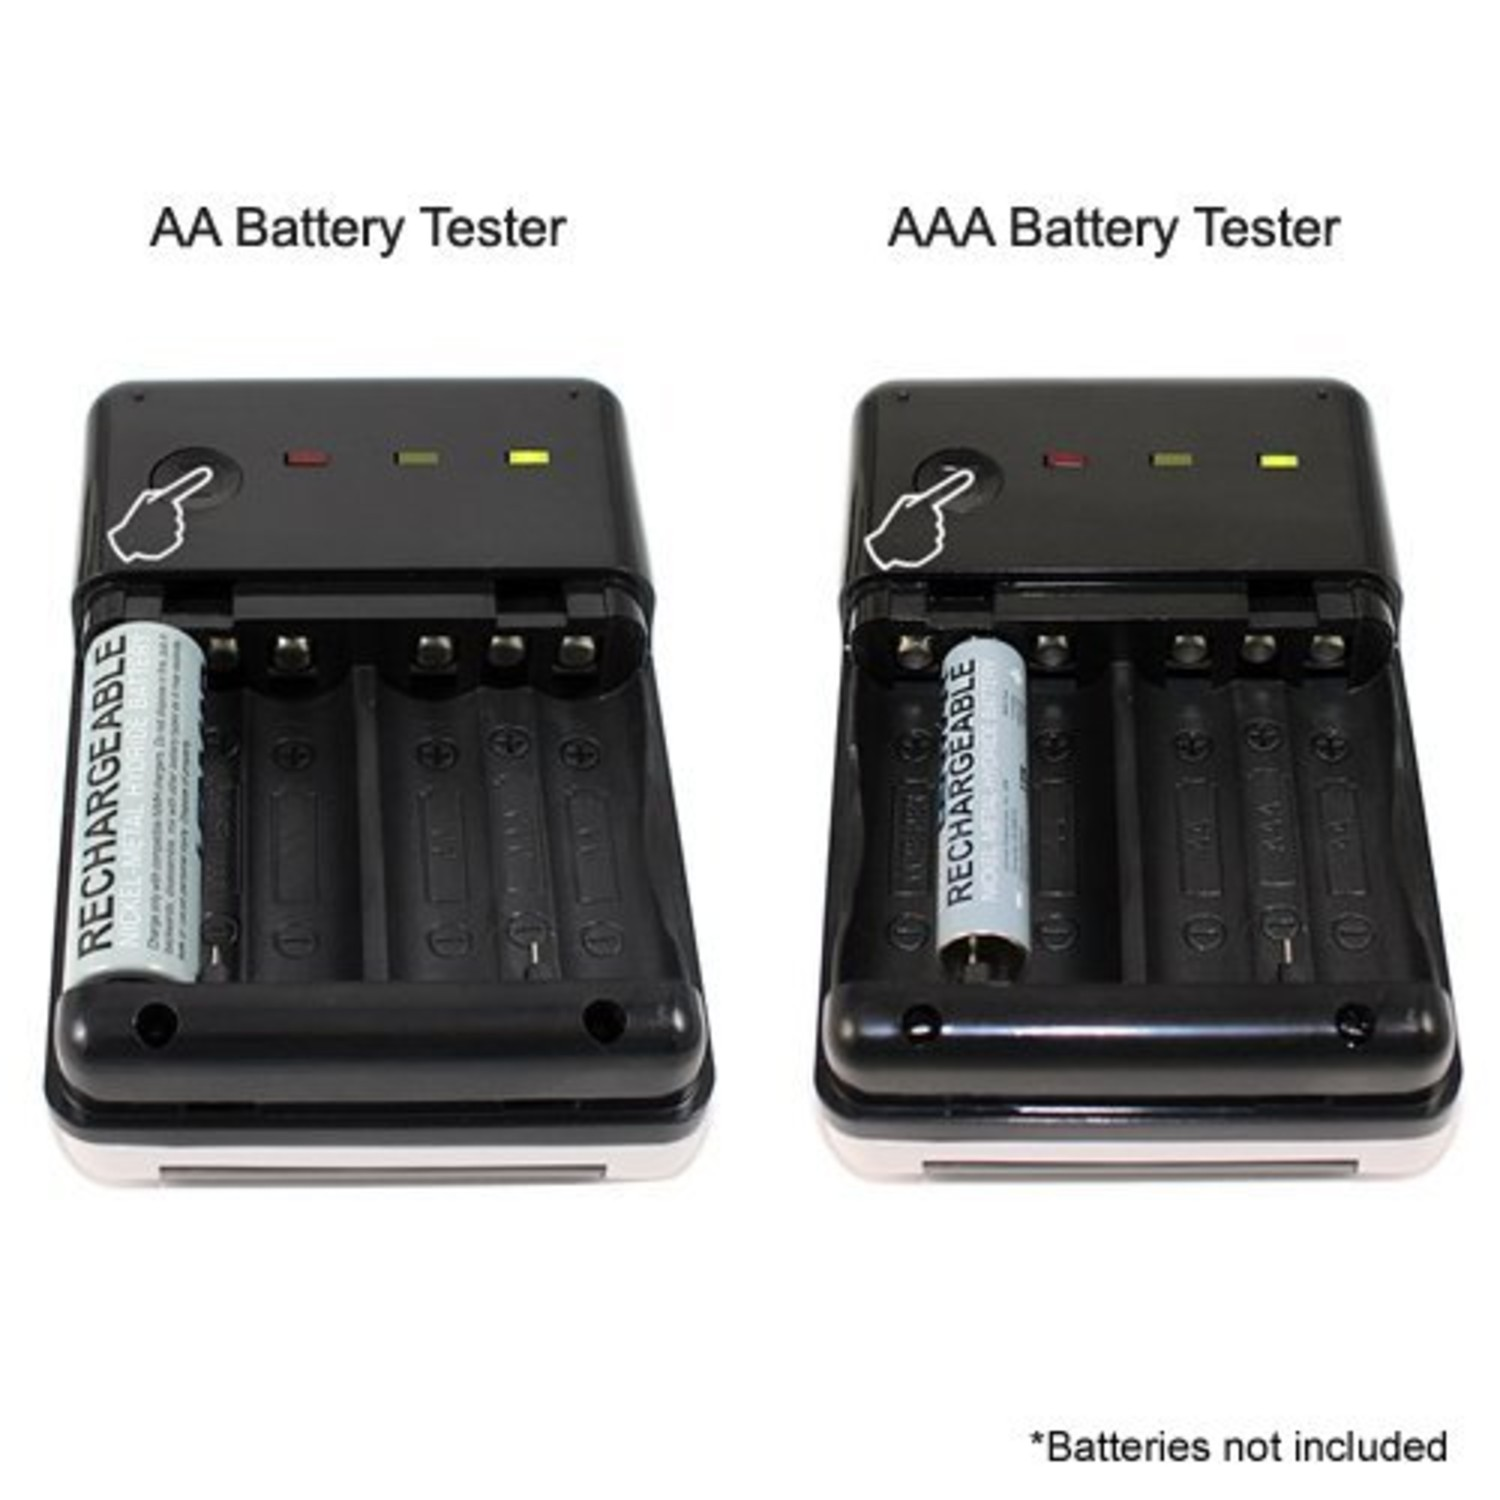 xtg solar aa aaa battery charger and tester lenmar. Black Bedroom Furniture Sets. Home Design Ideas